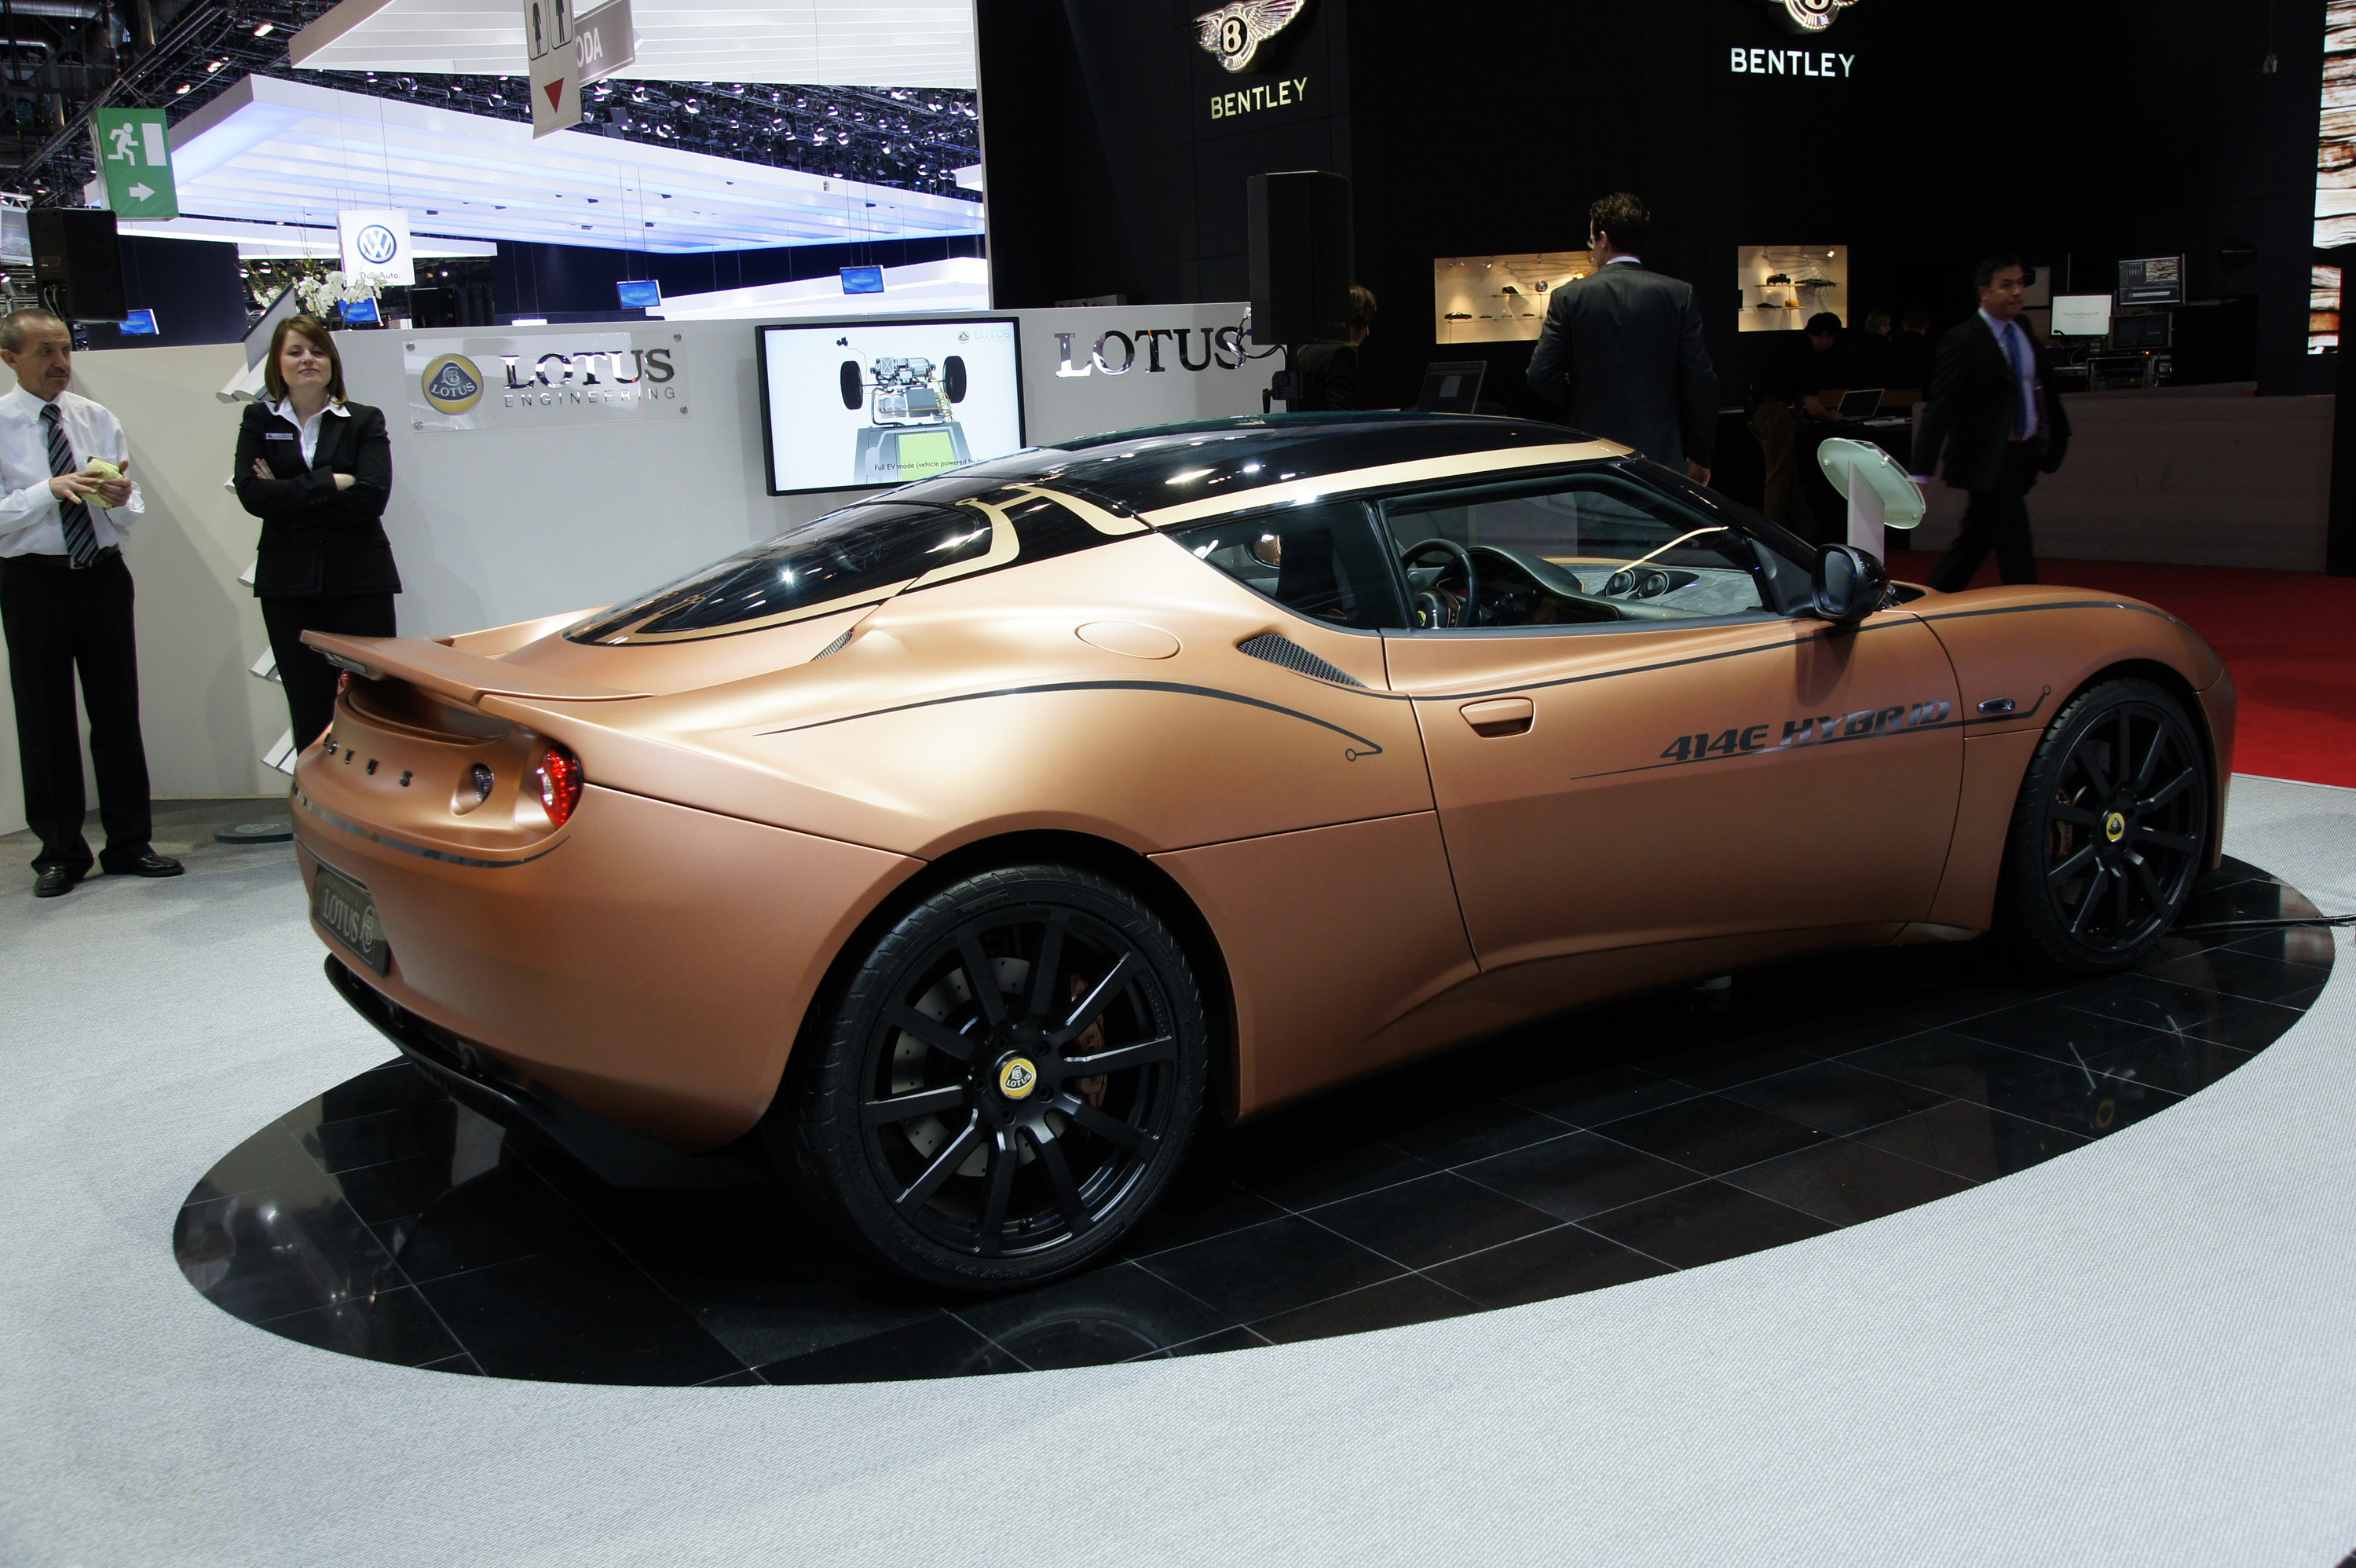 http://www.automobilesreview.com/gallery/lotus-evora-414e-hybrid-geneva-2010/lotus-evora-414e-hybrid-geneva-2010-02.jpg